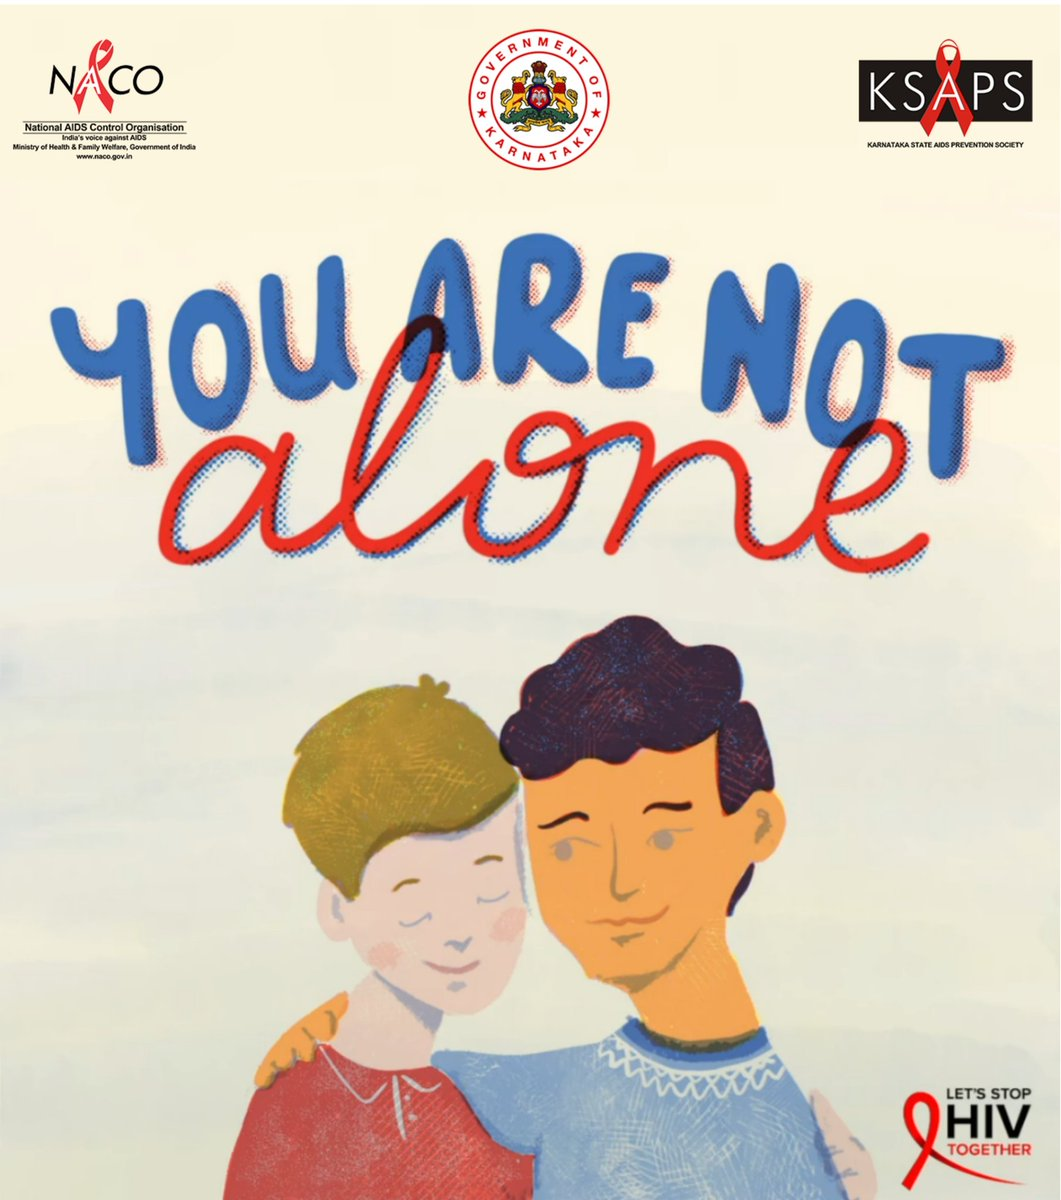 Do not discriminate #HIV infected people. Support them and spread love not stigma. #hivaids #hivawareness #hiveducation #knowyourstatus #hivtest #gettested #health #youthsagainsthiv #endaids @PMOIndia @narendramodi @CMofKarnataka @MoHFW_INDIA @DrHVoffice @UNICEFIndia @WHO